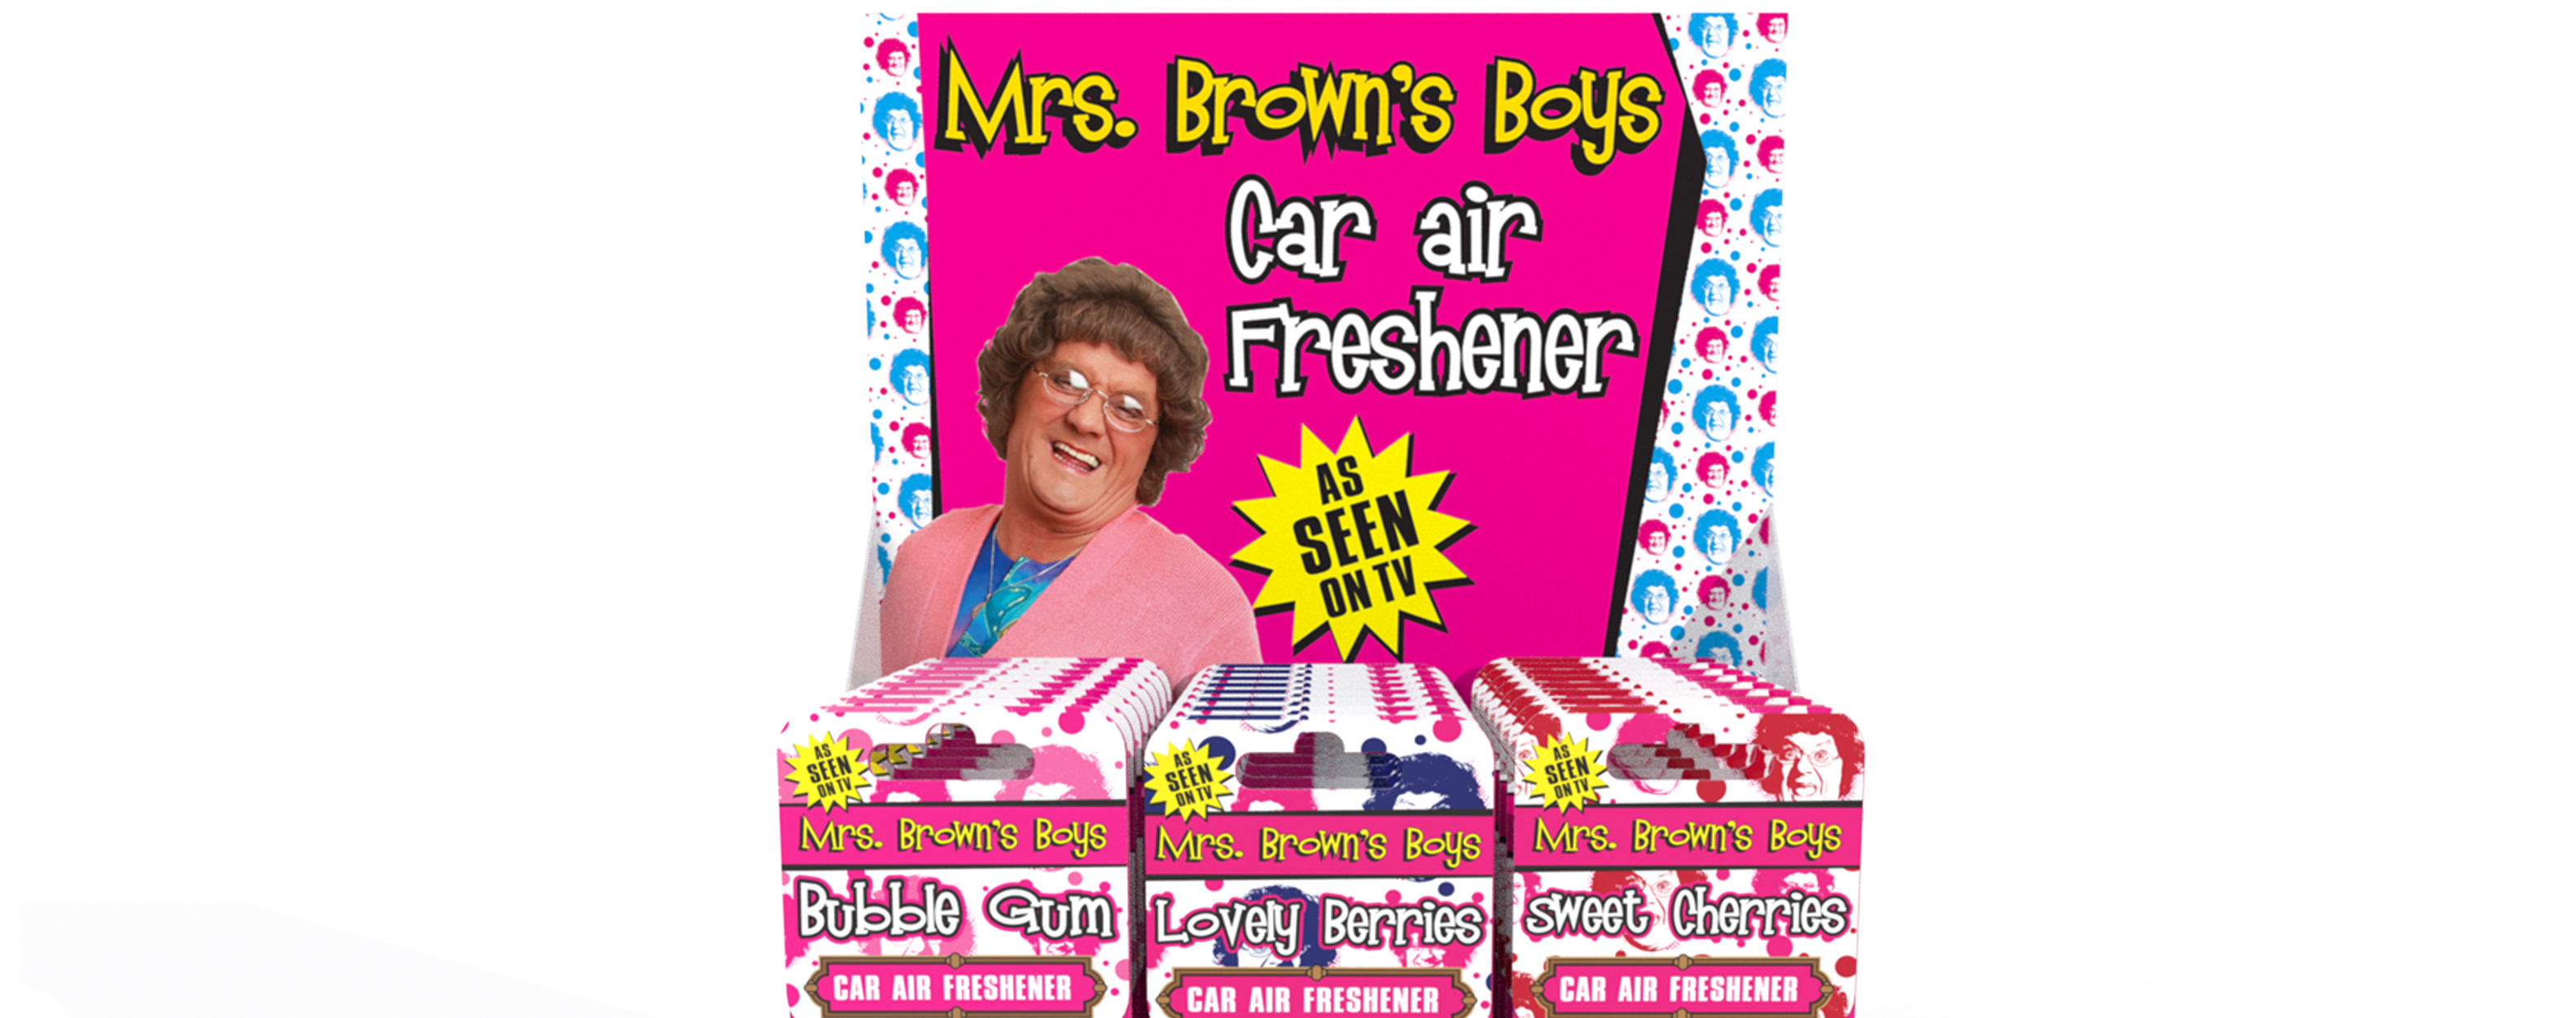 Mrs Browns Boys Air Freshener CDU Visuals printing and branding